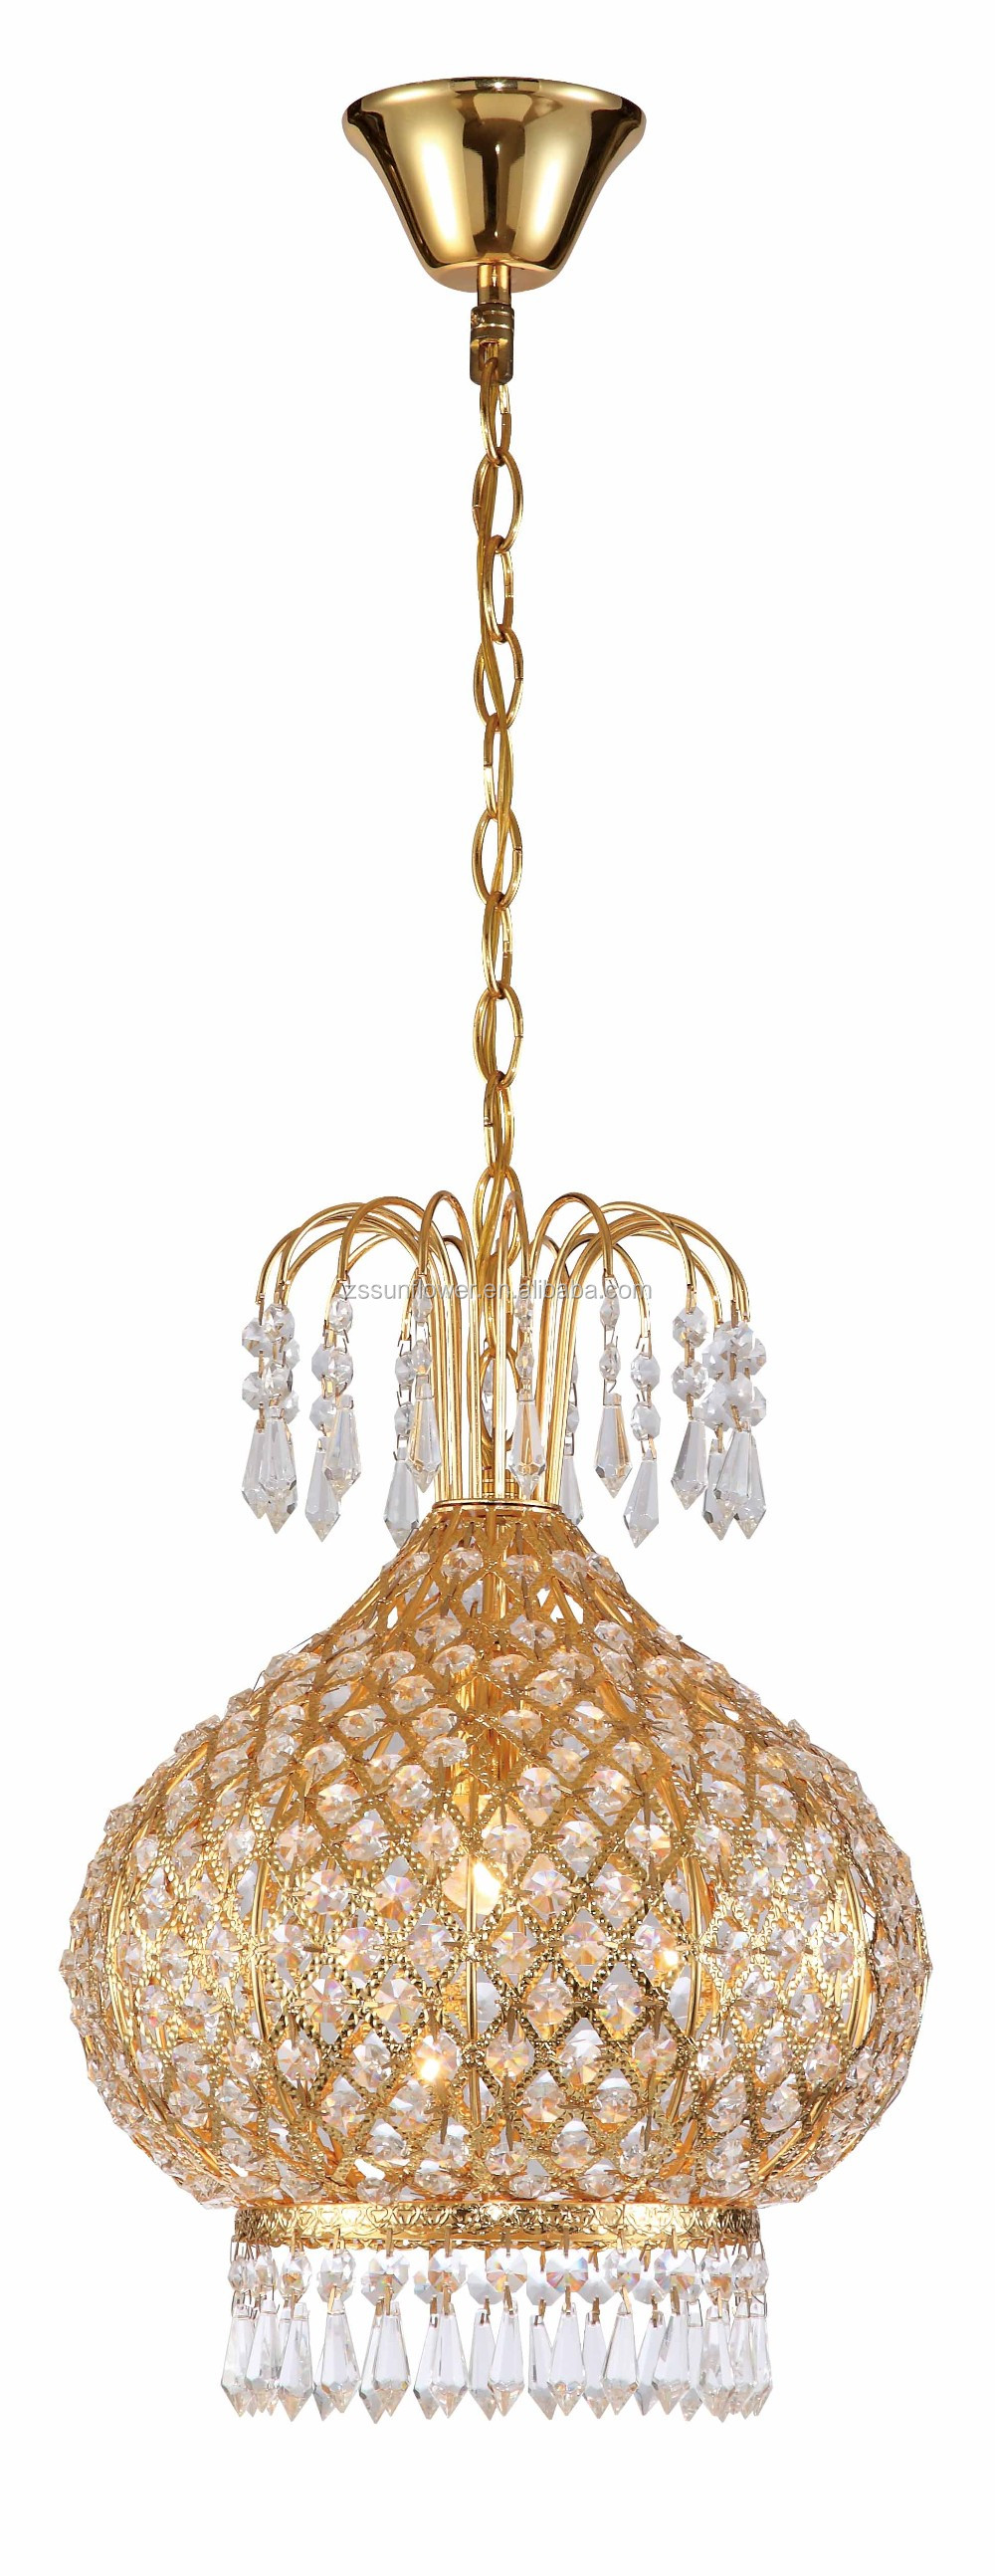 Indoor Crystal Hanging Lamp Luxury Pendant Lamp Party